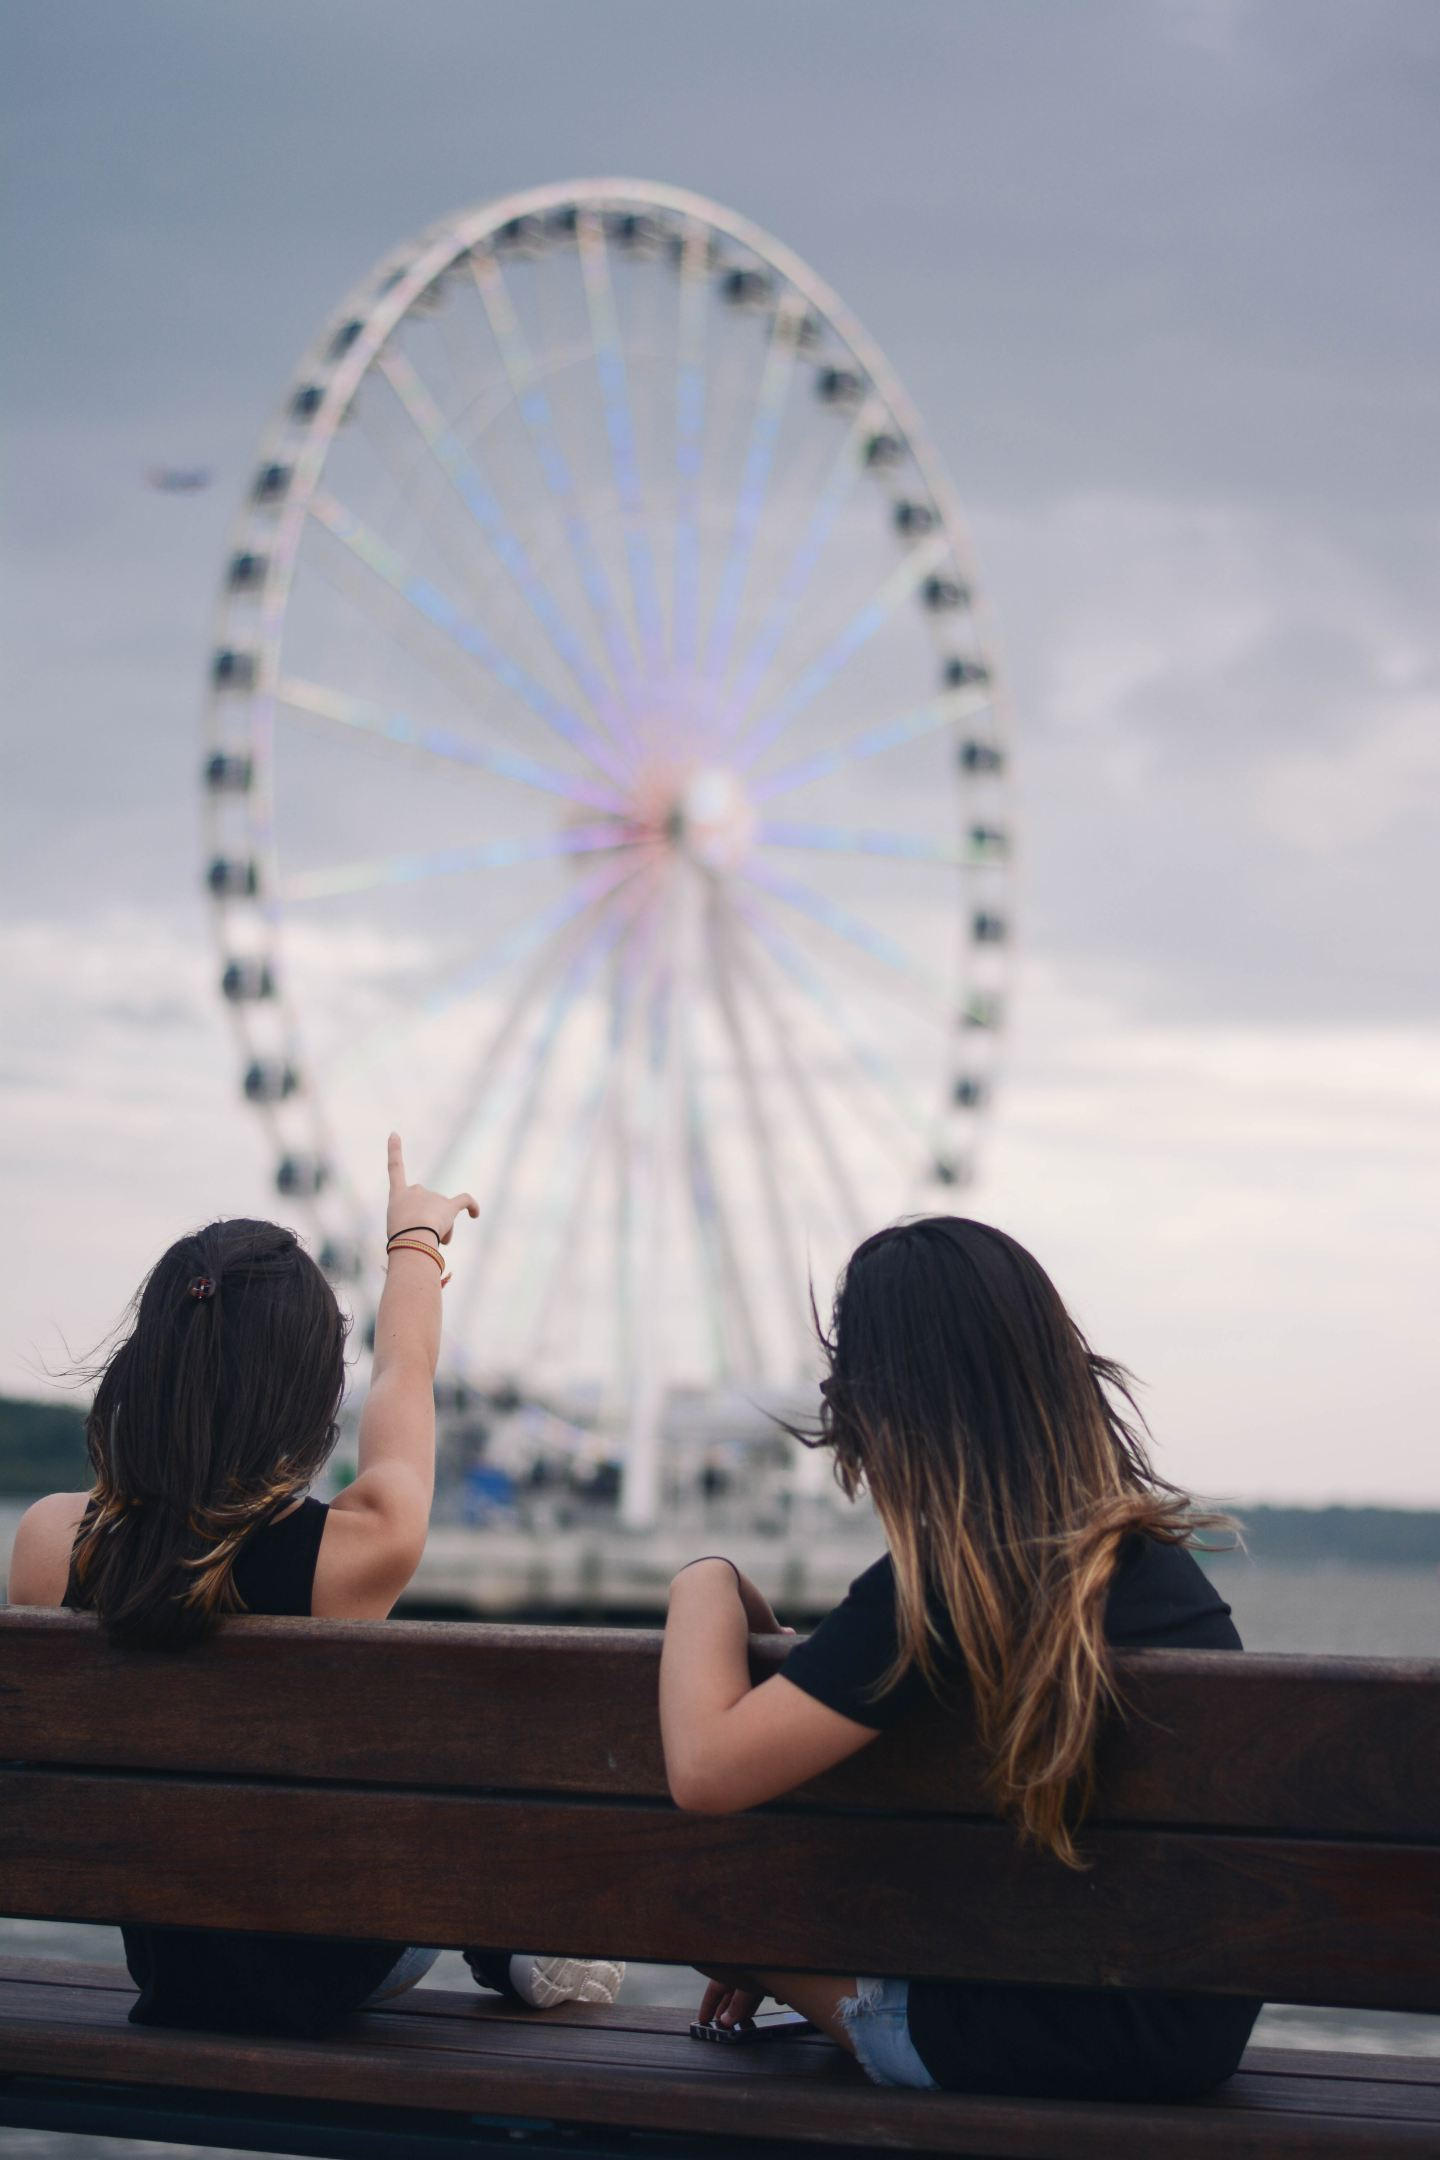 Friends: 6 Reasons We Would Be Lost Without Them